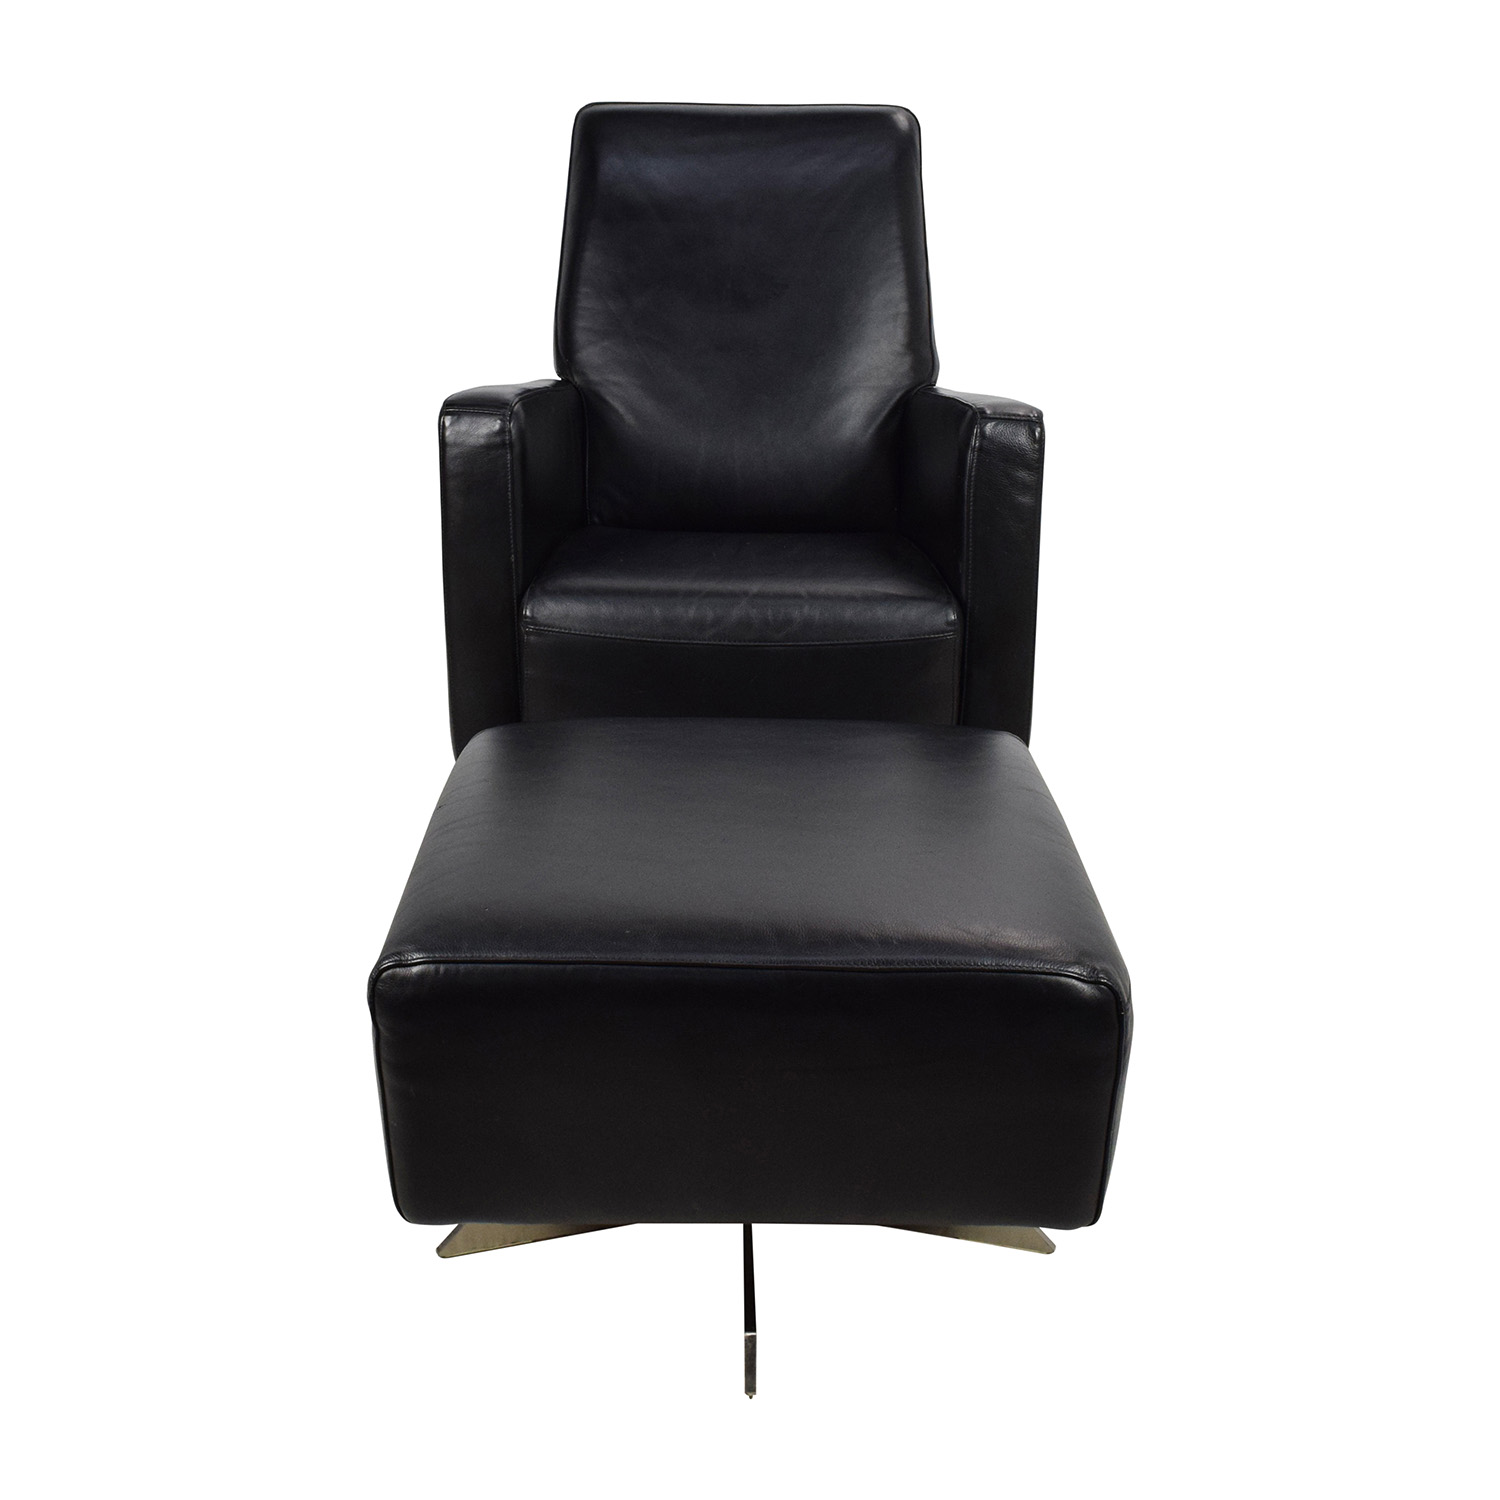 Natuzzi Natuzzi Black Leather Swivel Chair with Ottoman dimensions